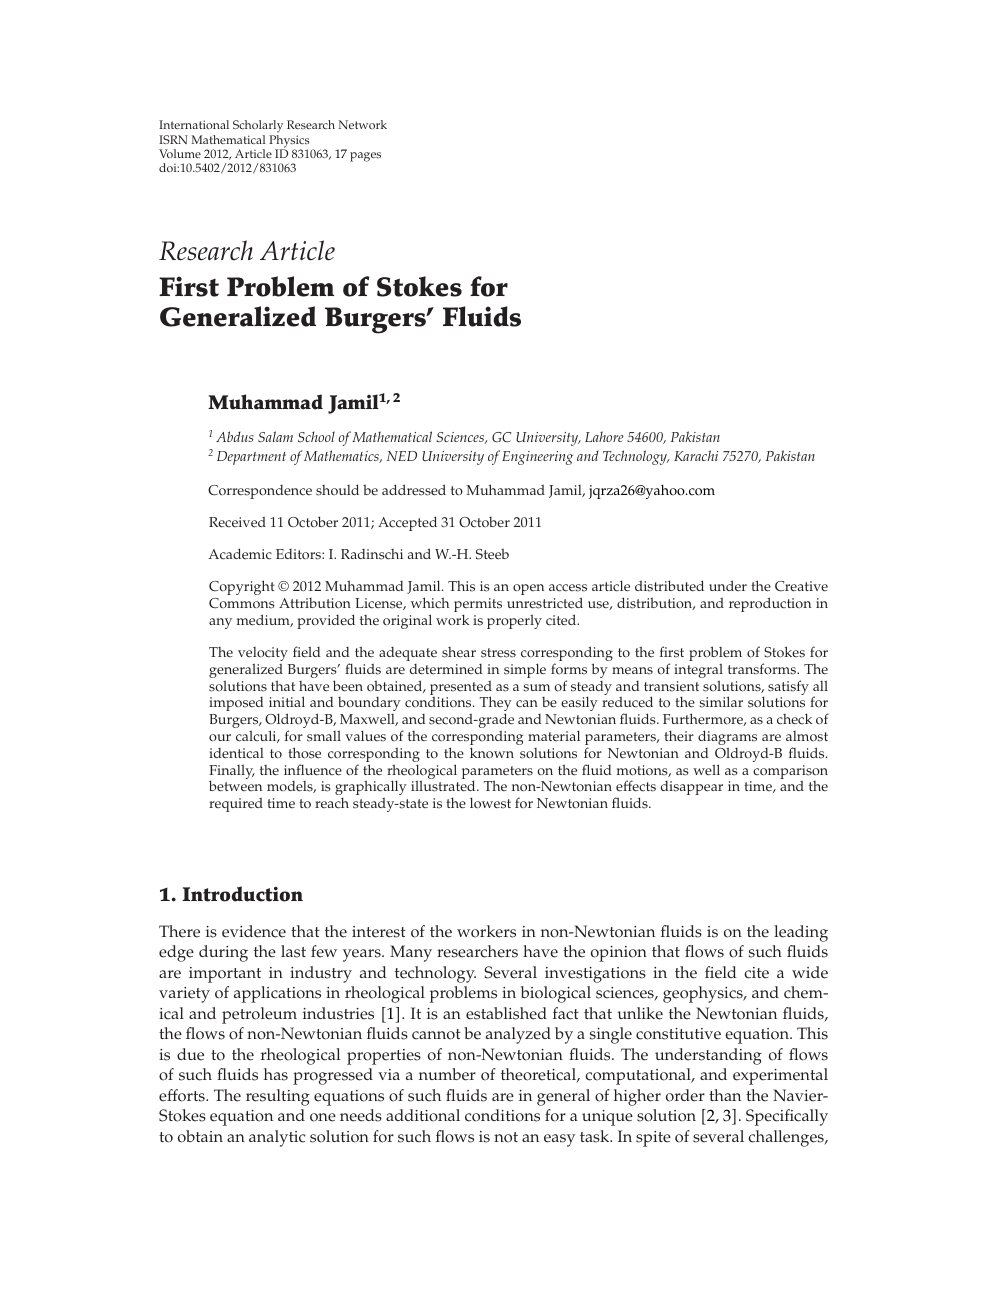 First Problem of Stokes for Generalized Burgers' Fluids – topic of